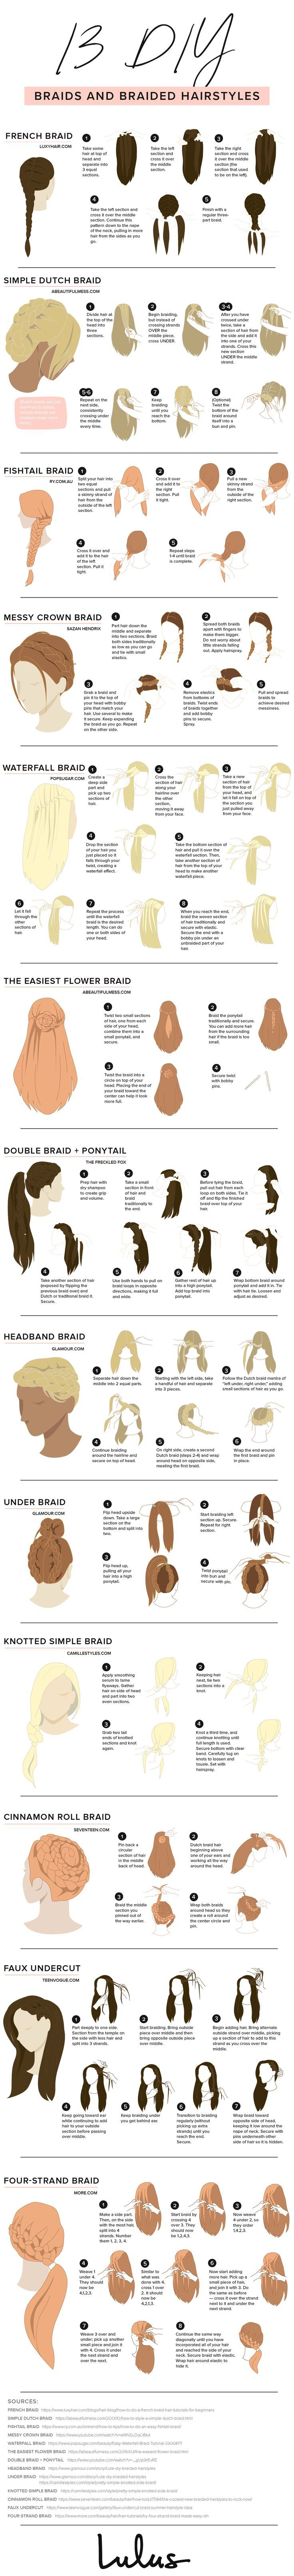 12 Different Types of Braids You Should Totally Try (Tutorials Included) #typesofhairstyles